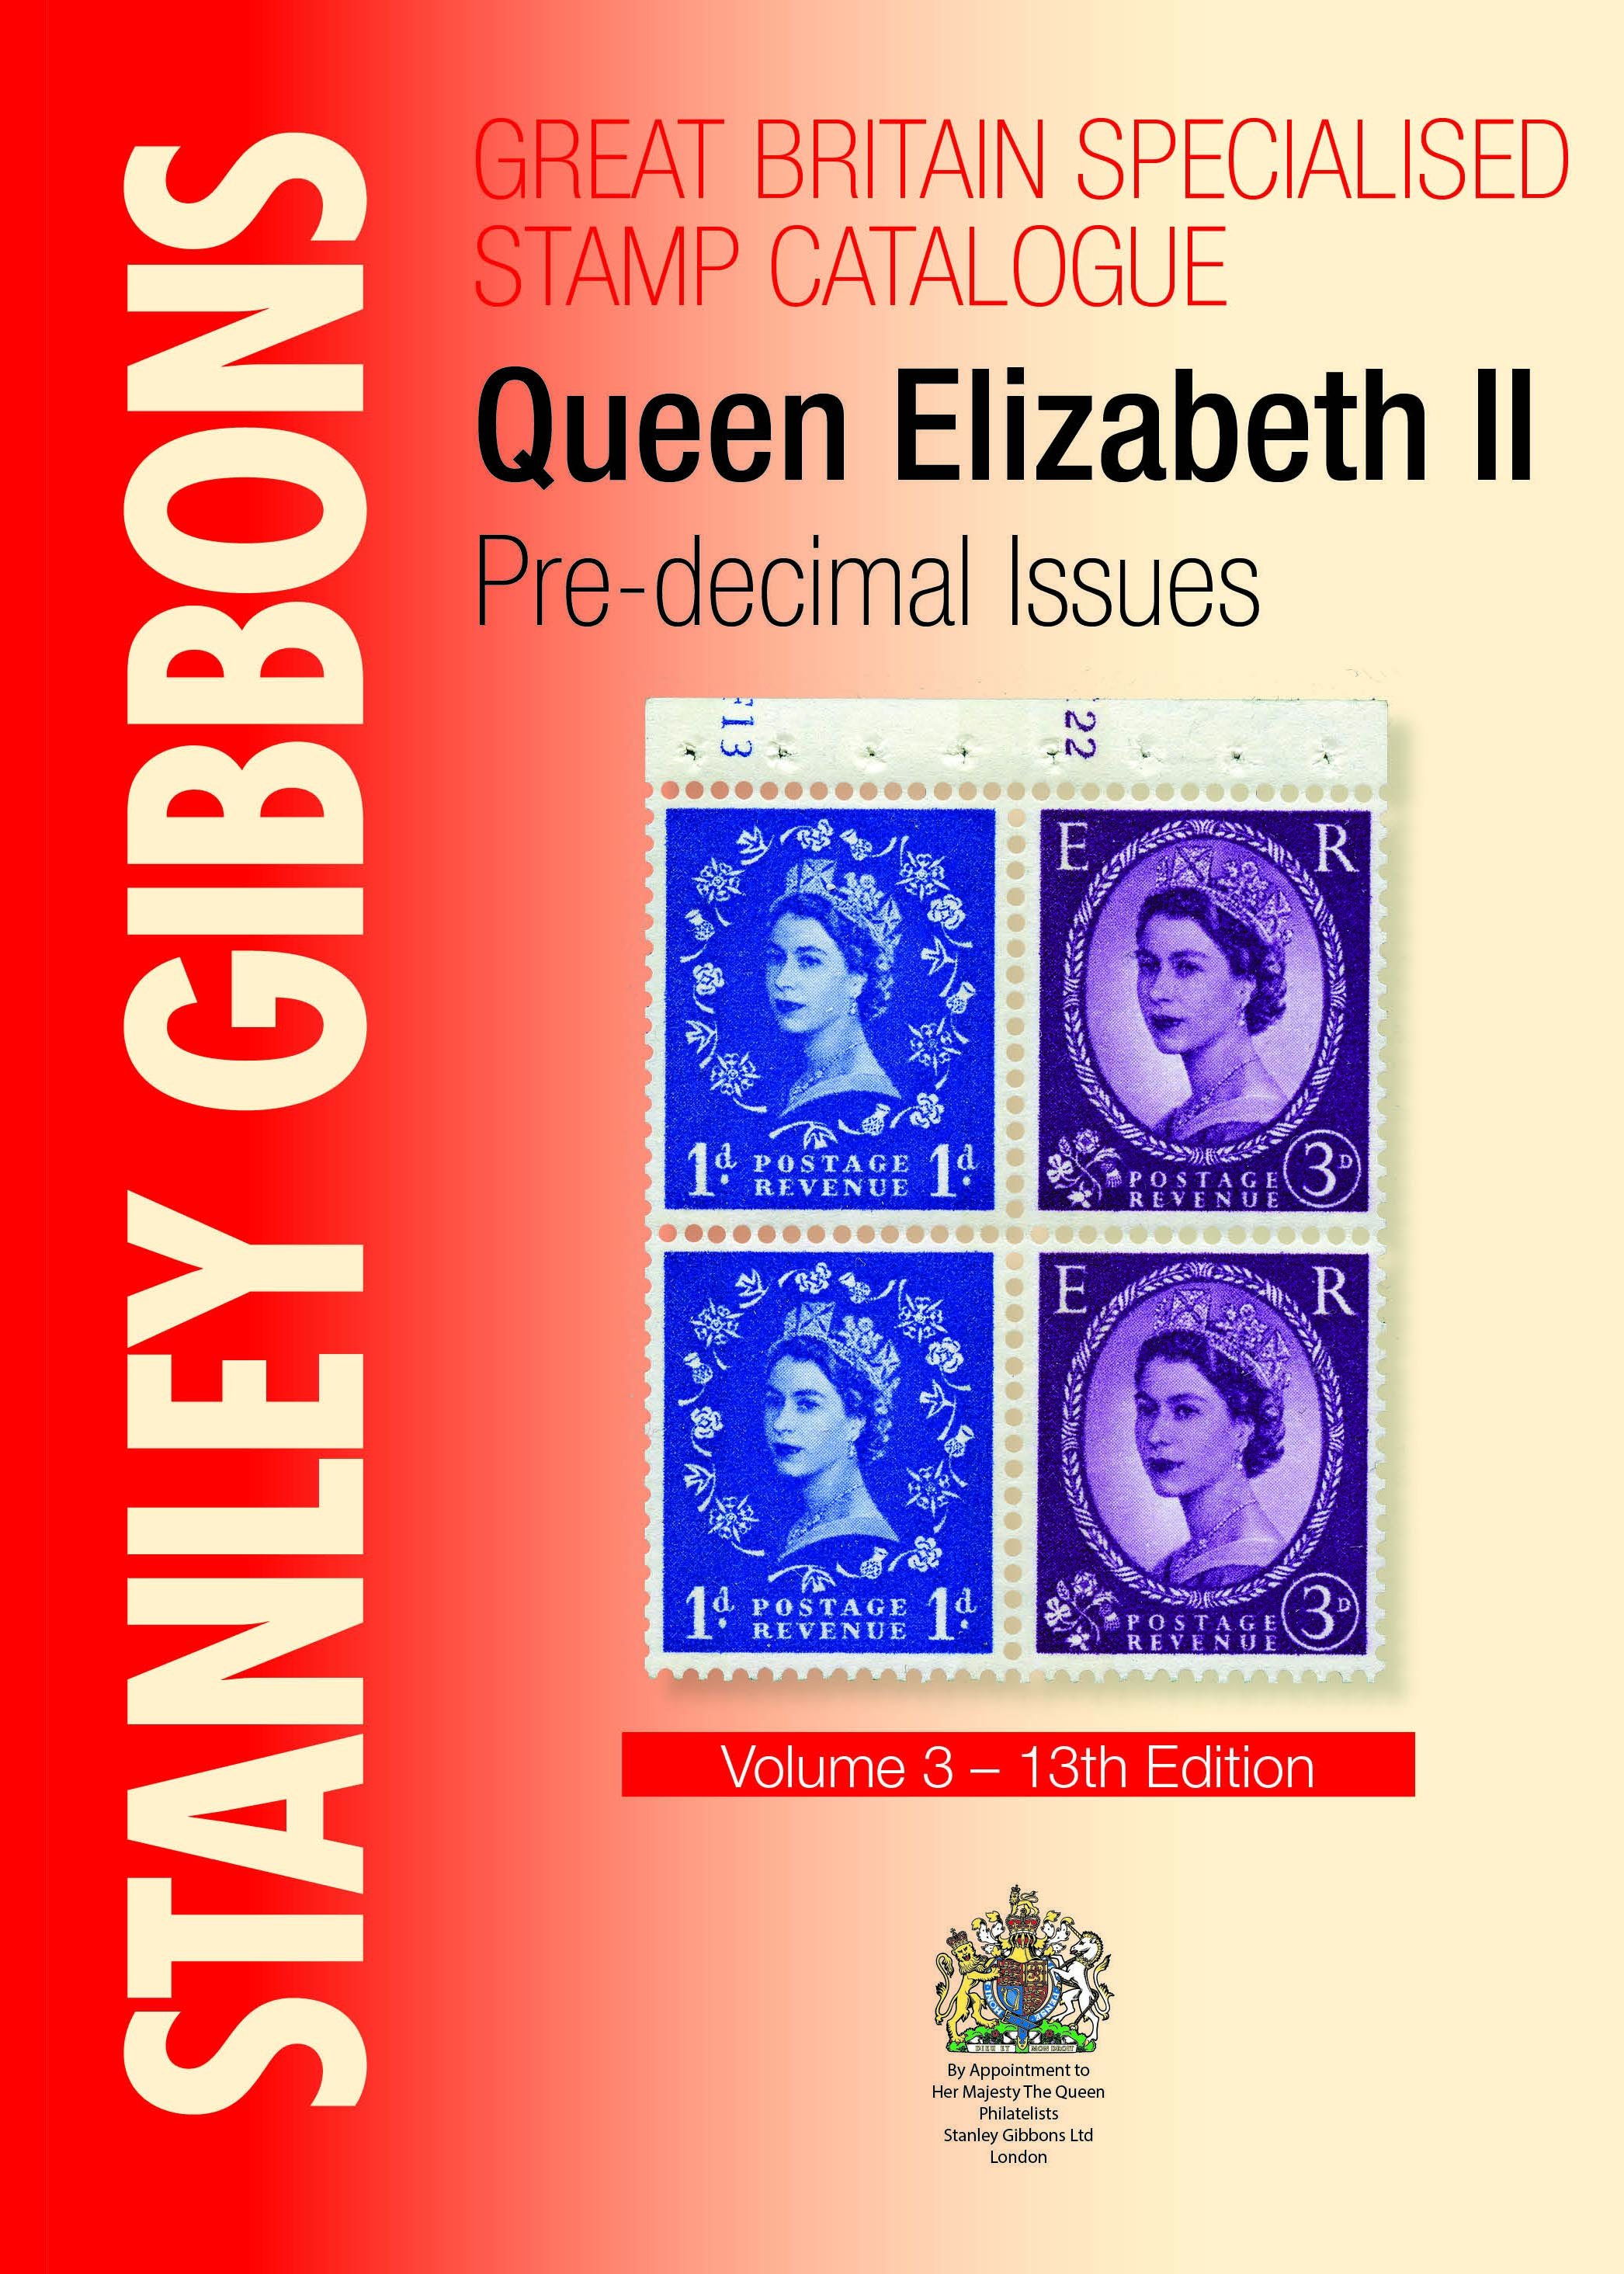 GB Specialised Stamp Catalogue QEII Pre-Decimal 13th Ed.